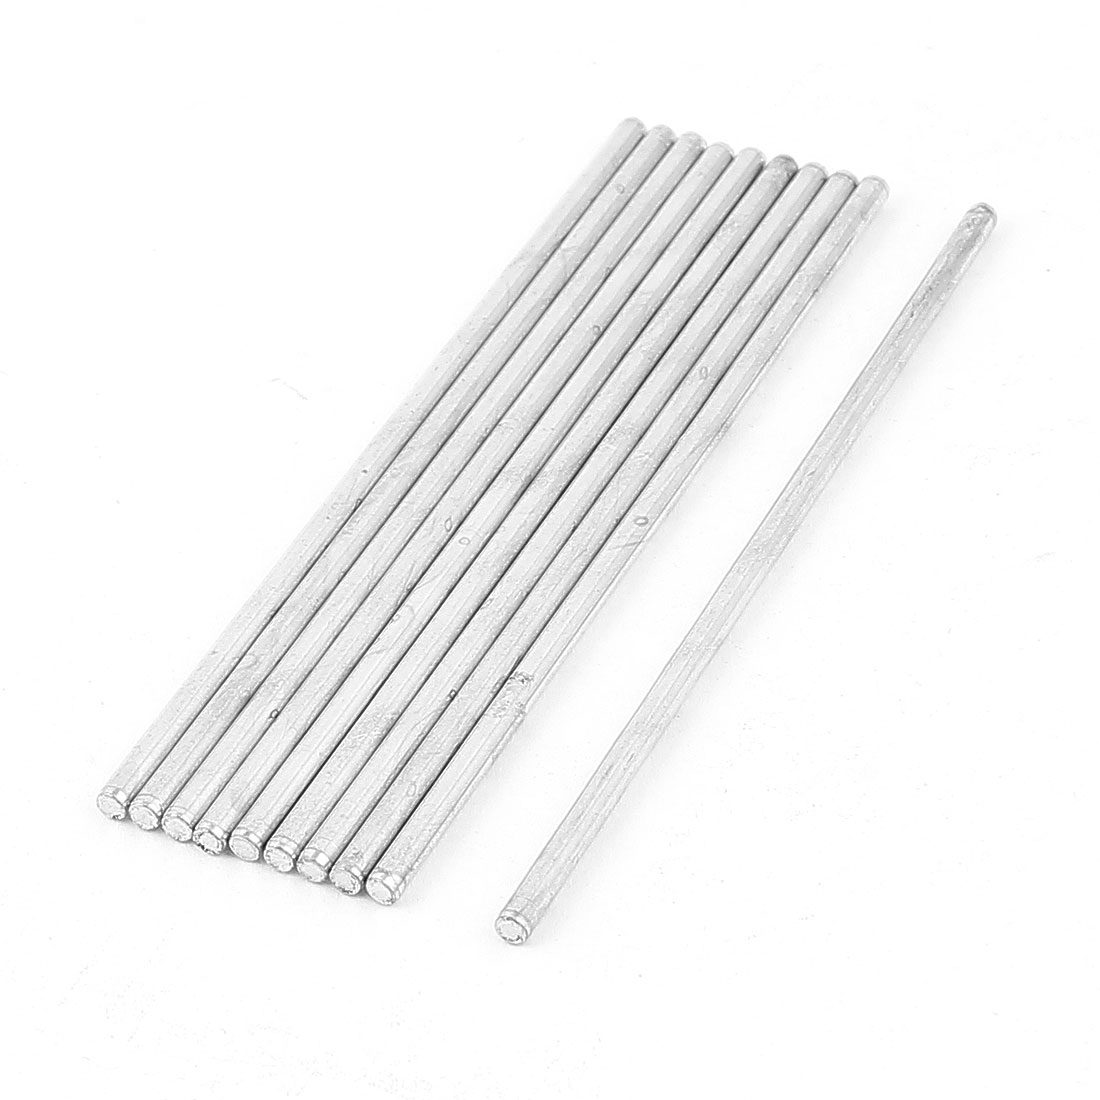 10 Pcs 2mmx100mm Metal Solid Round Rod Bar for DIY RC Model Car